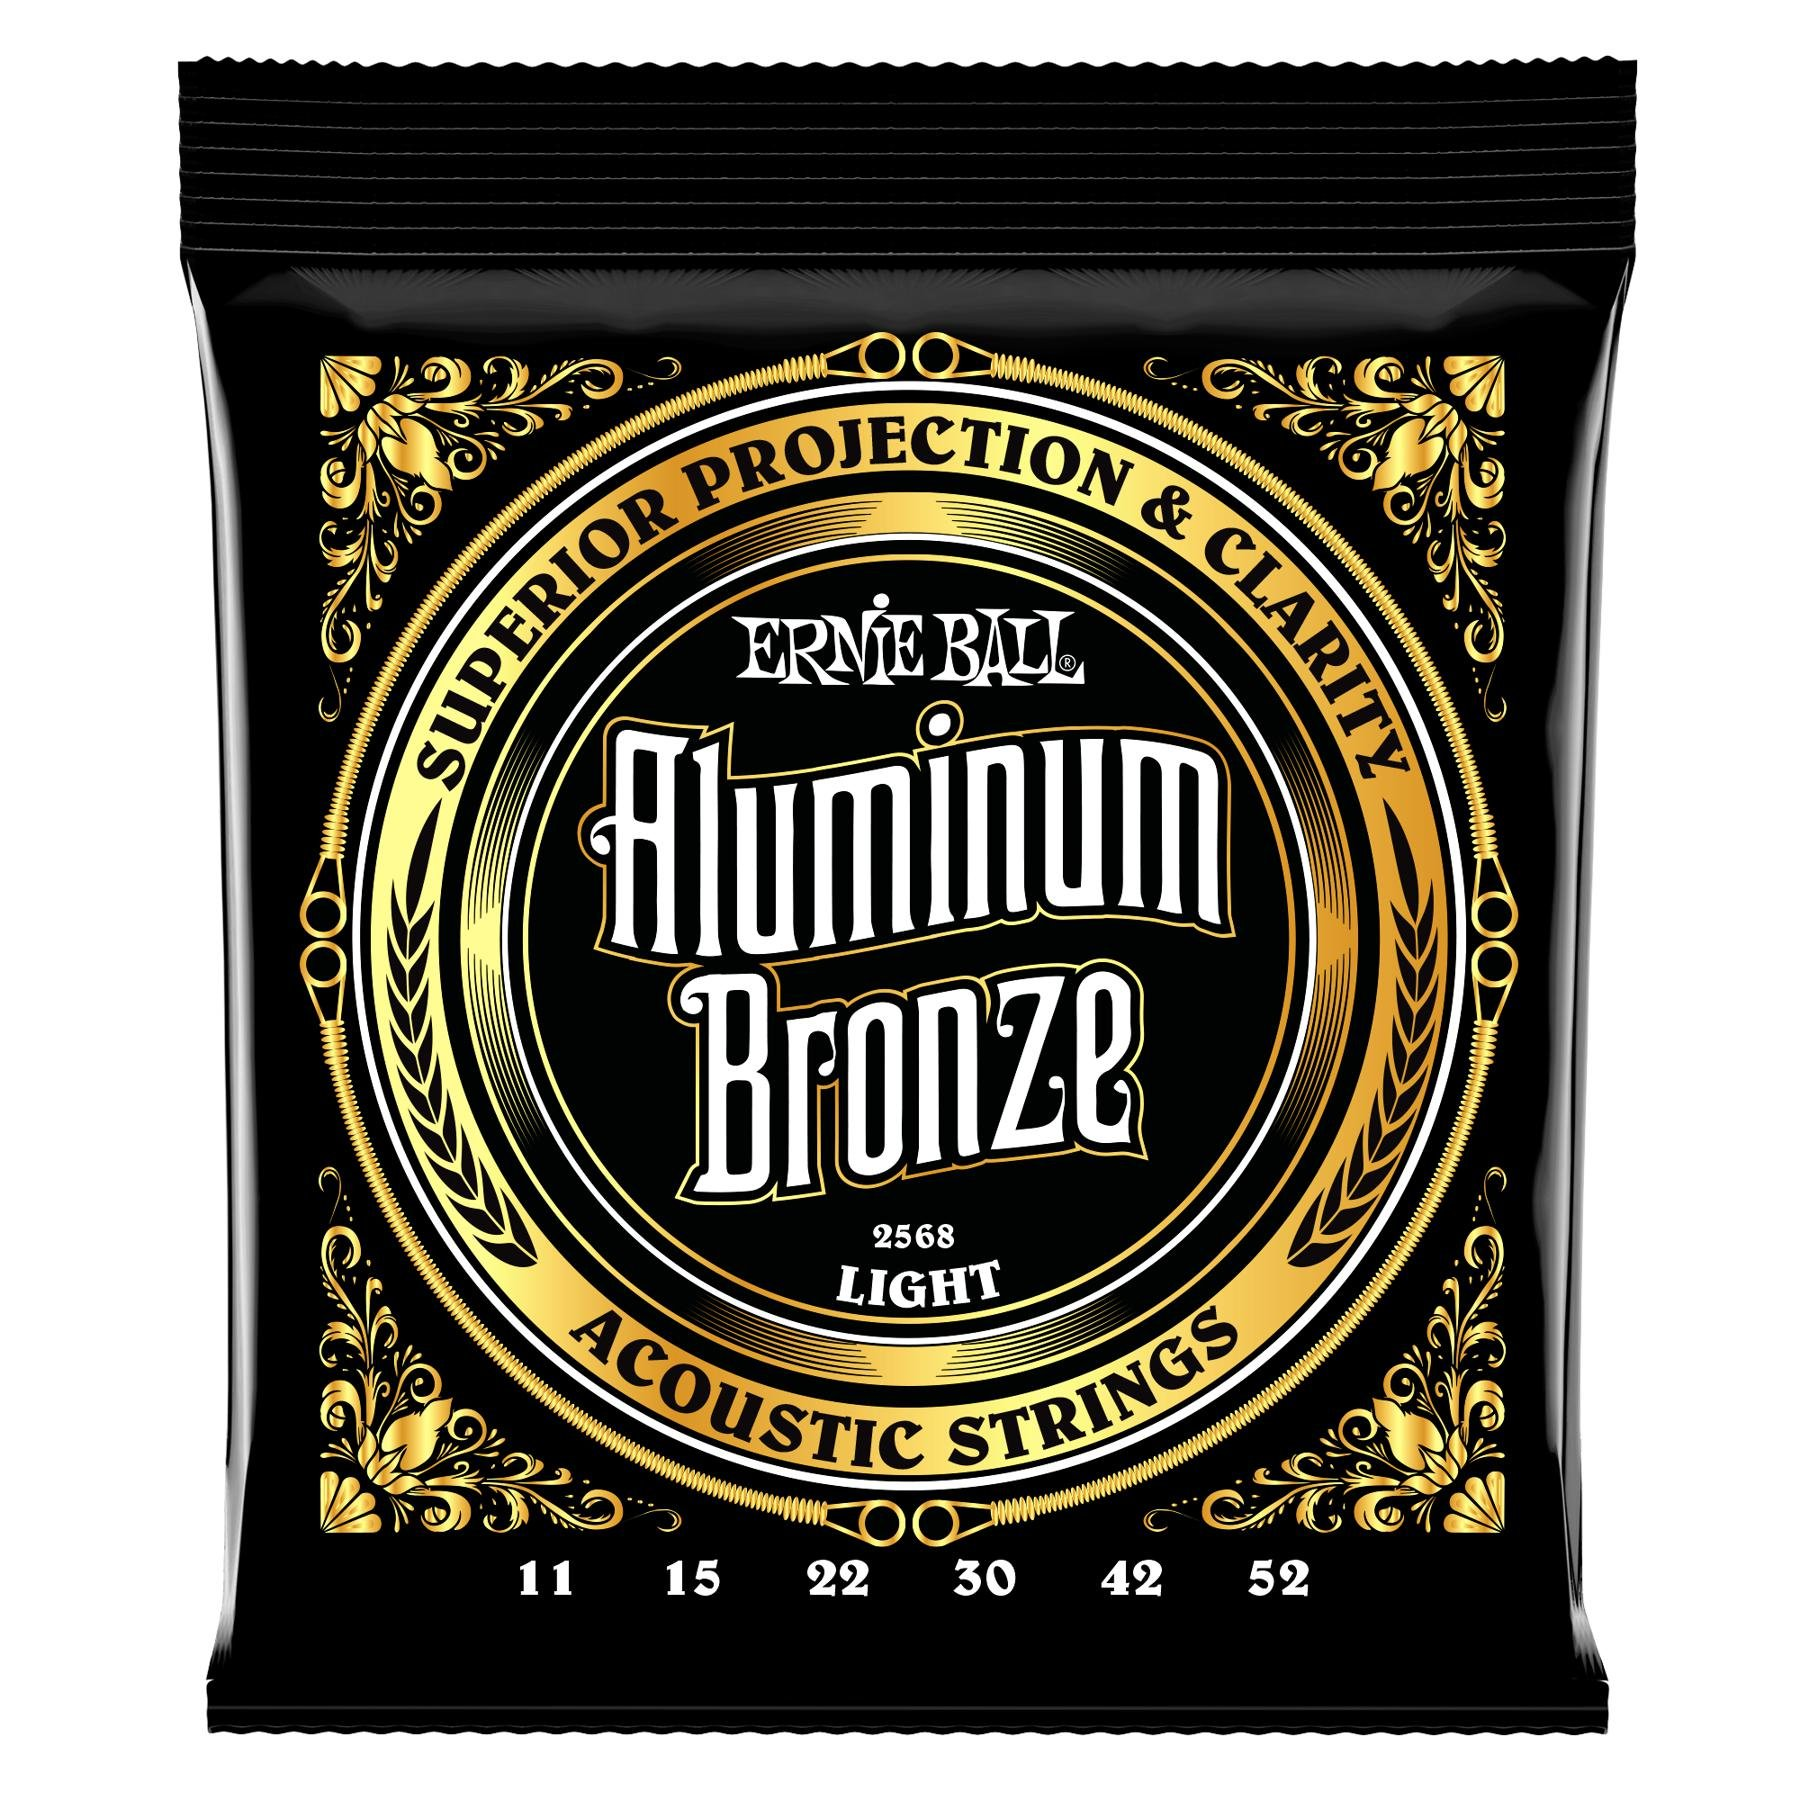 Ernie Ball 2568 Aluminum Bronze Acoustic Strings - .011-.052 Light image 1